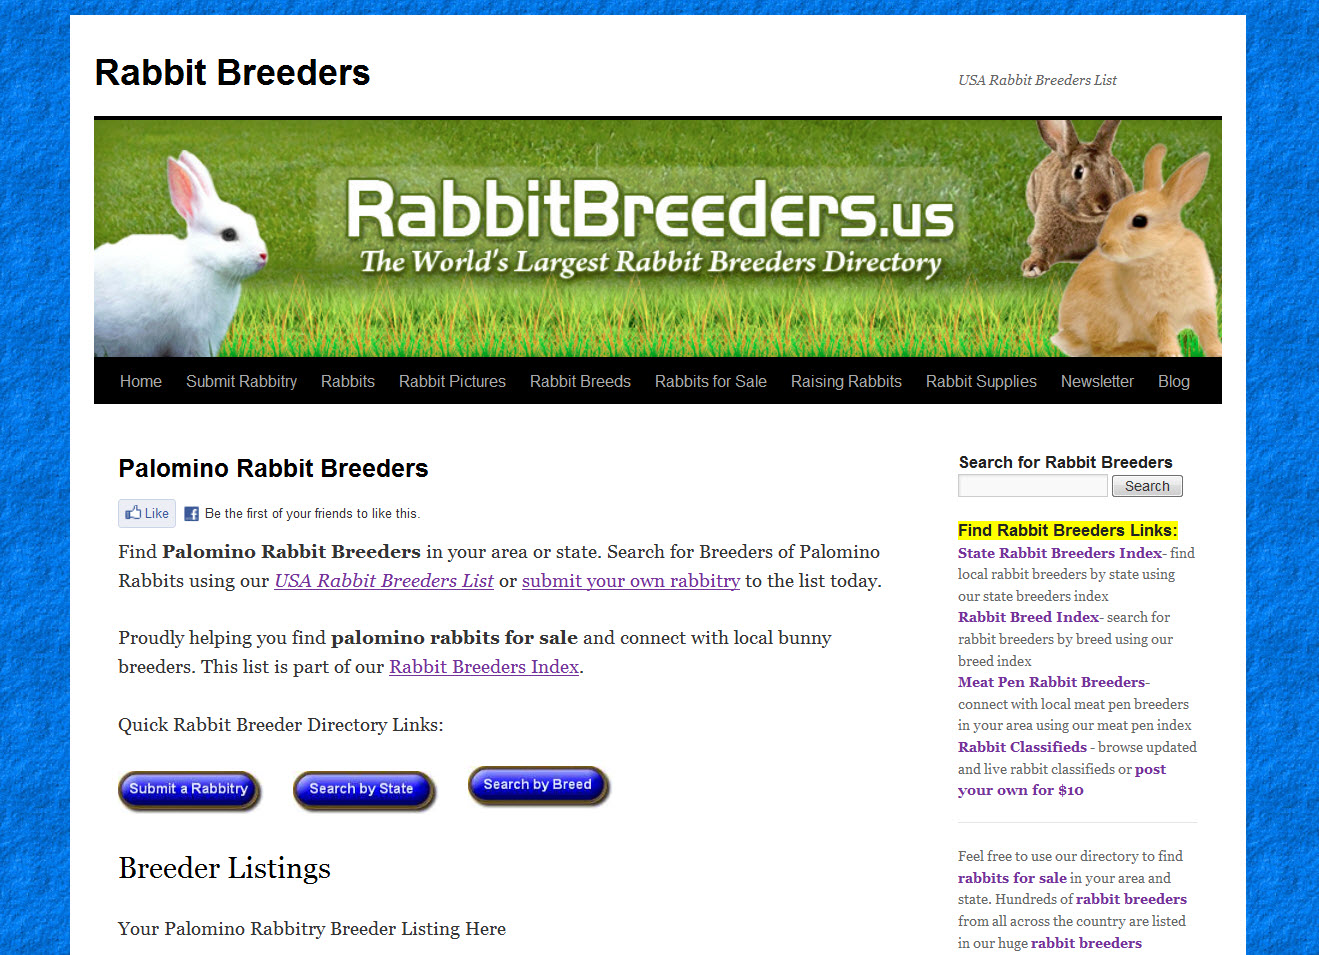 Palomino Rabbit Breeders